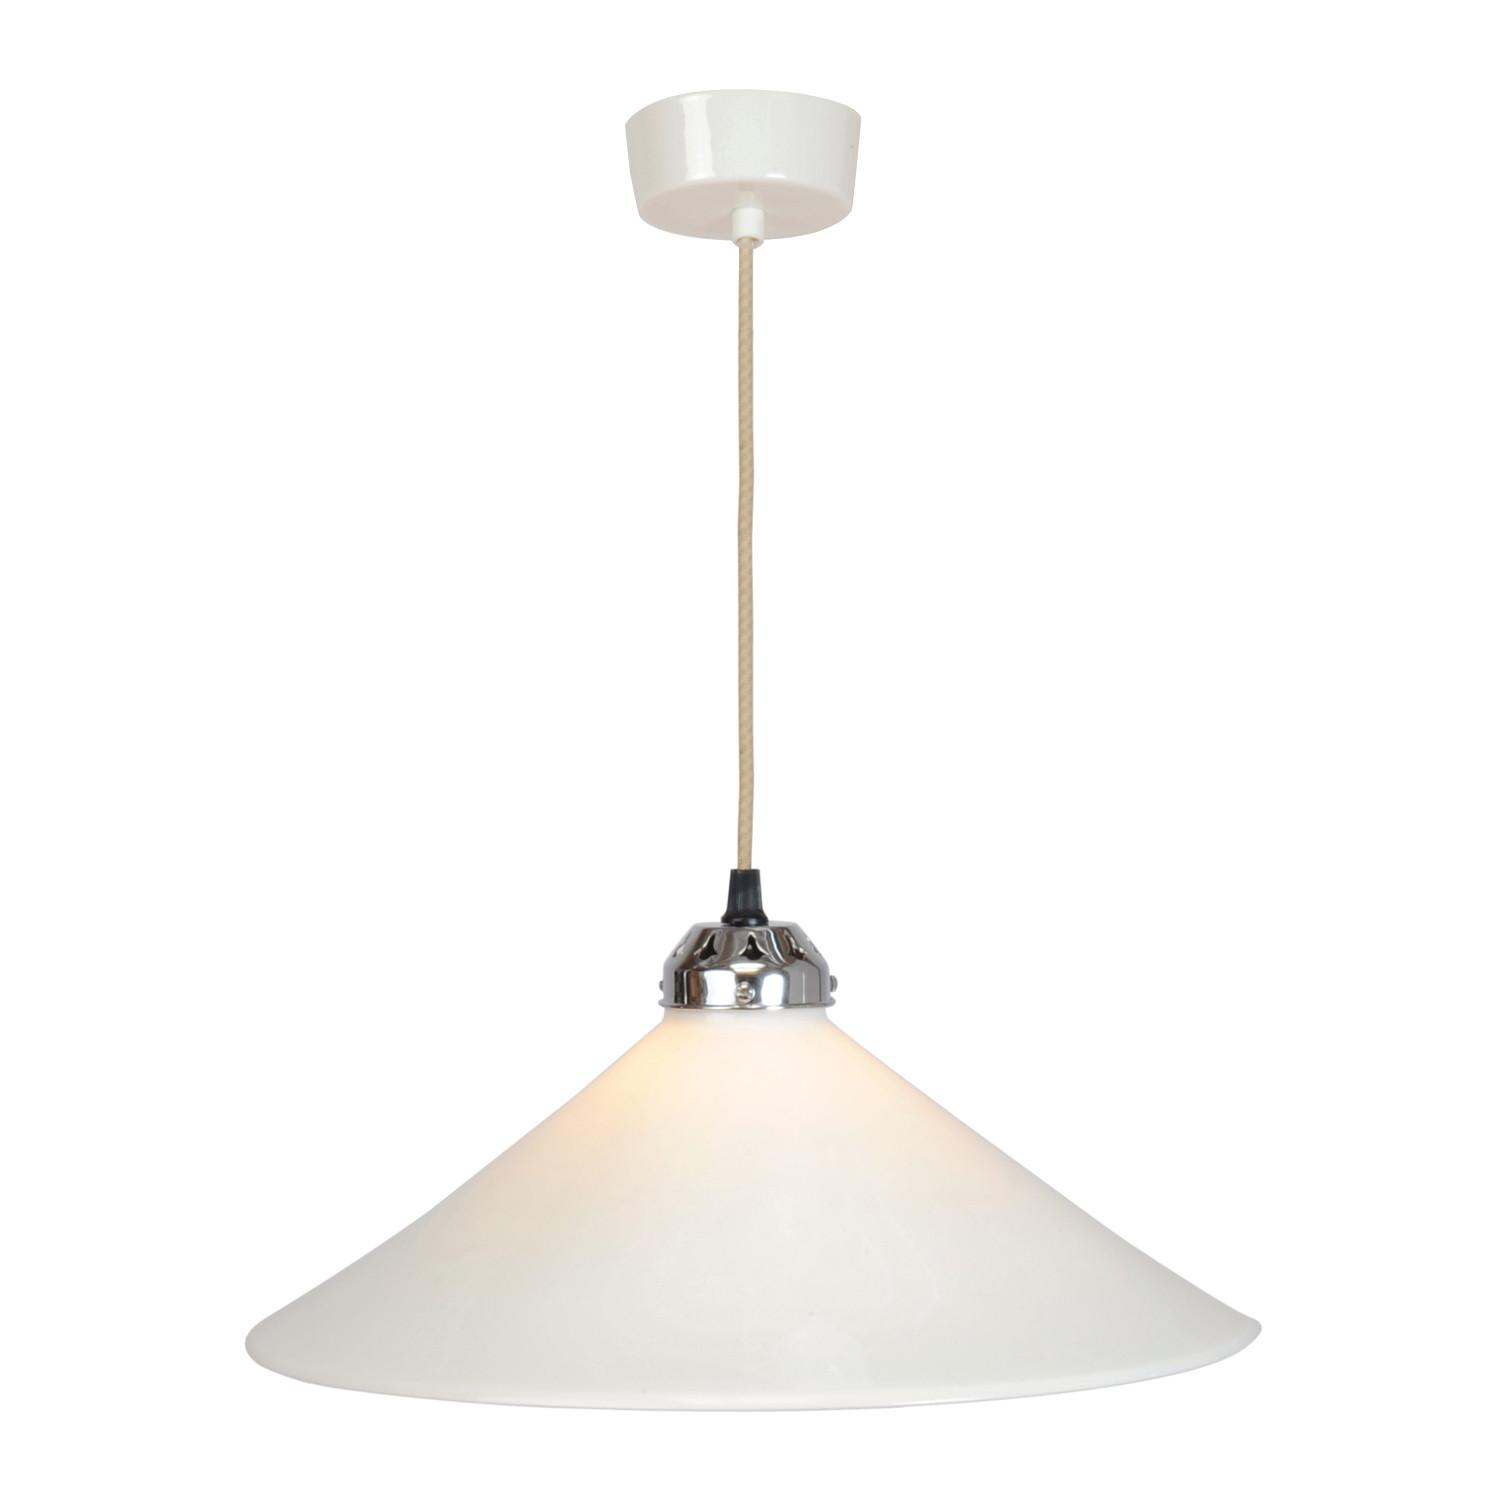 Cobb Large Plain Pendant Light White Original Btc